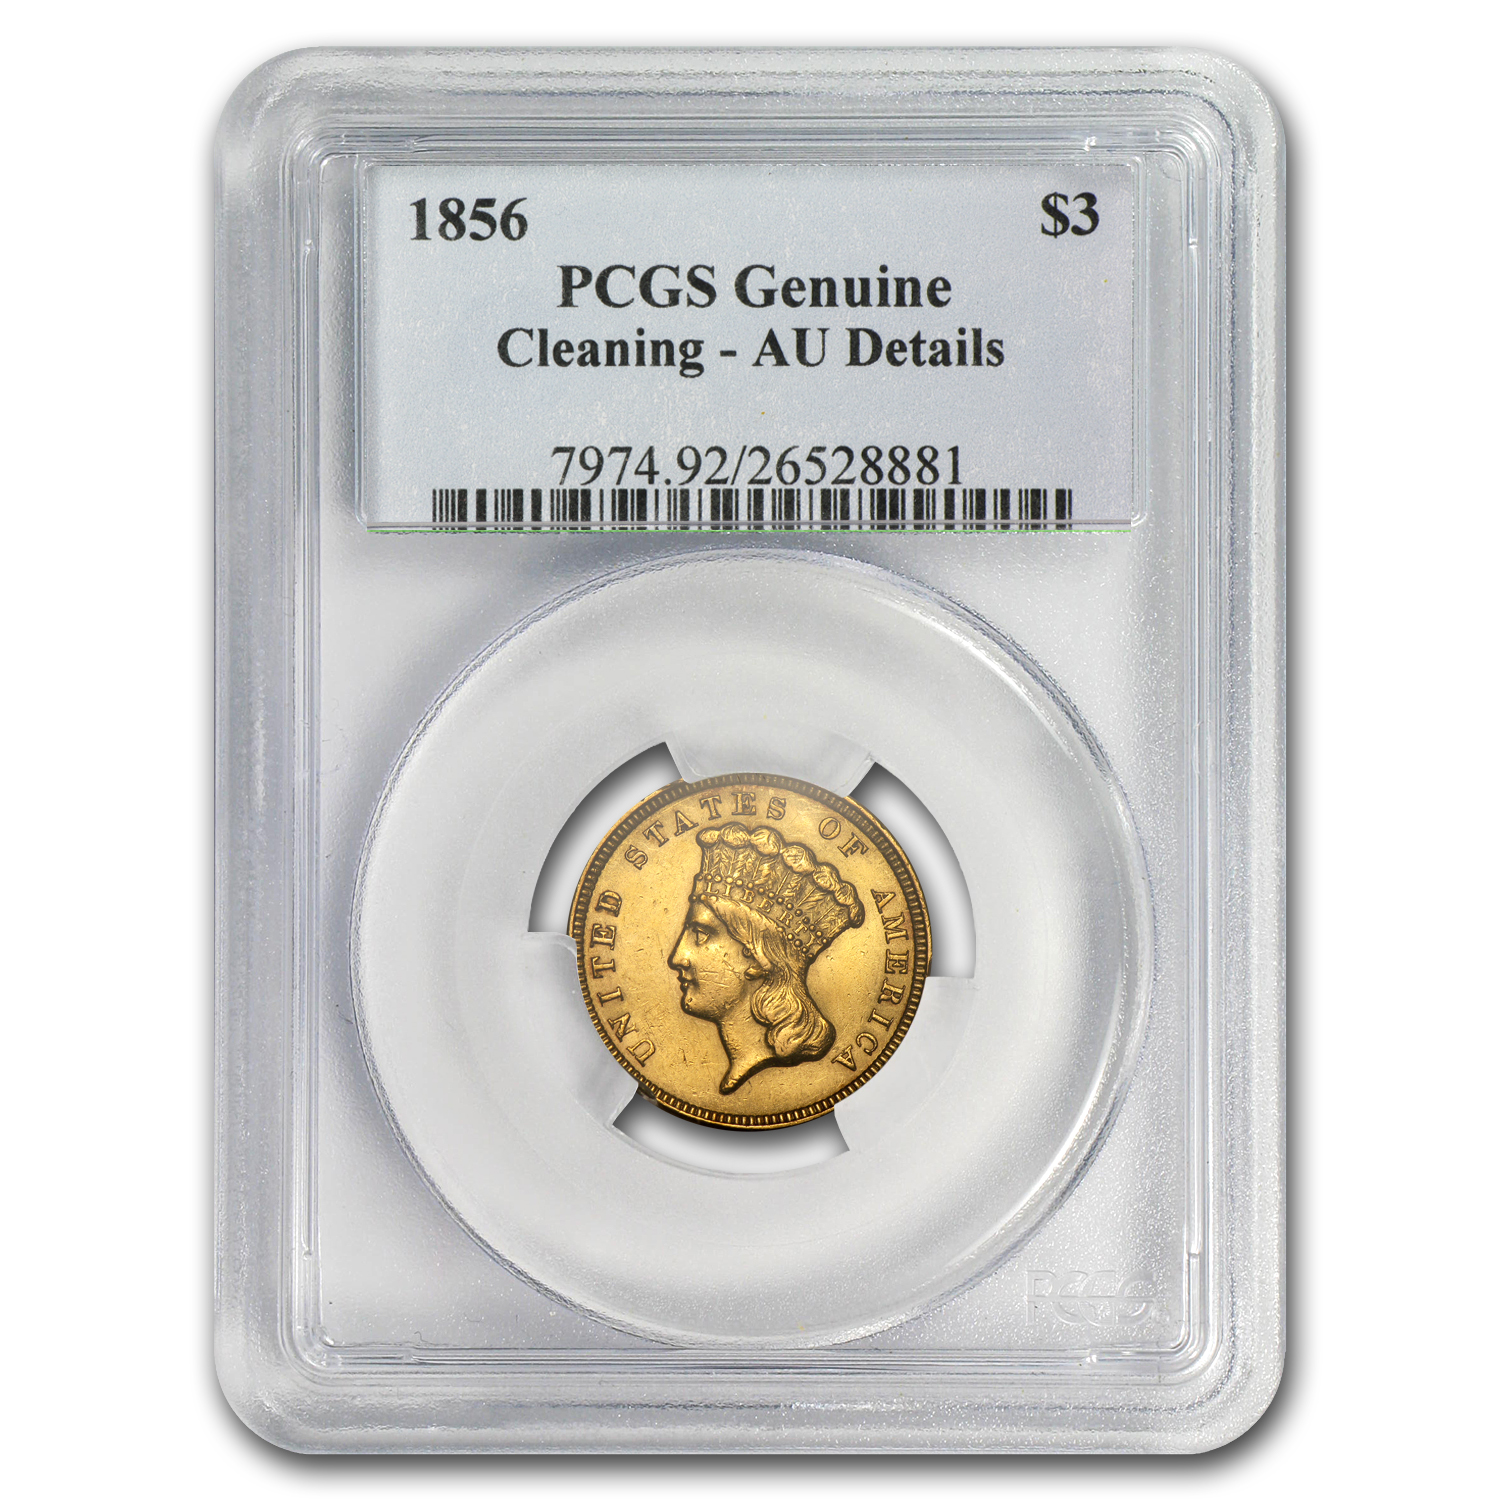 1856 $3 Gold Princess - AU Details - PCGS - (Cleaned)